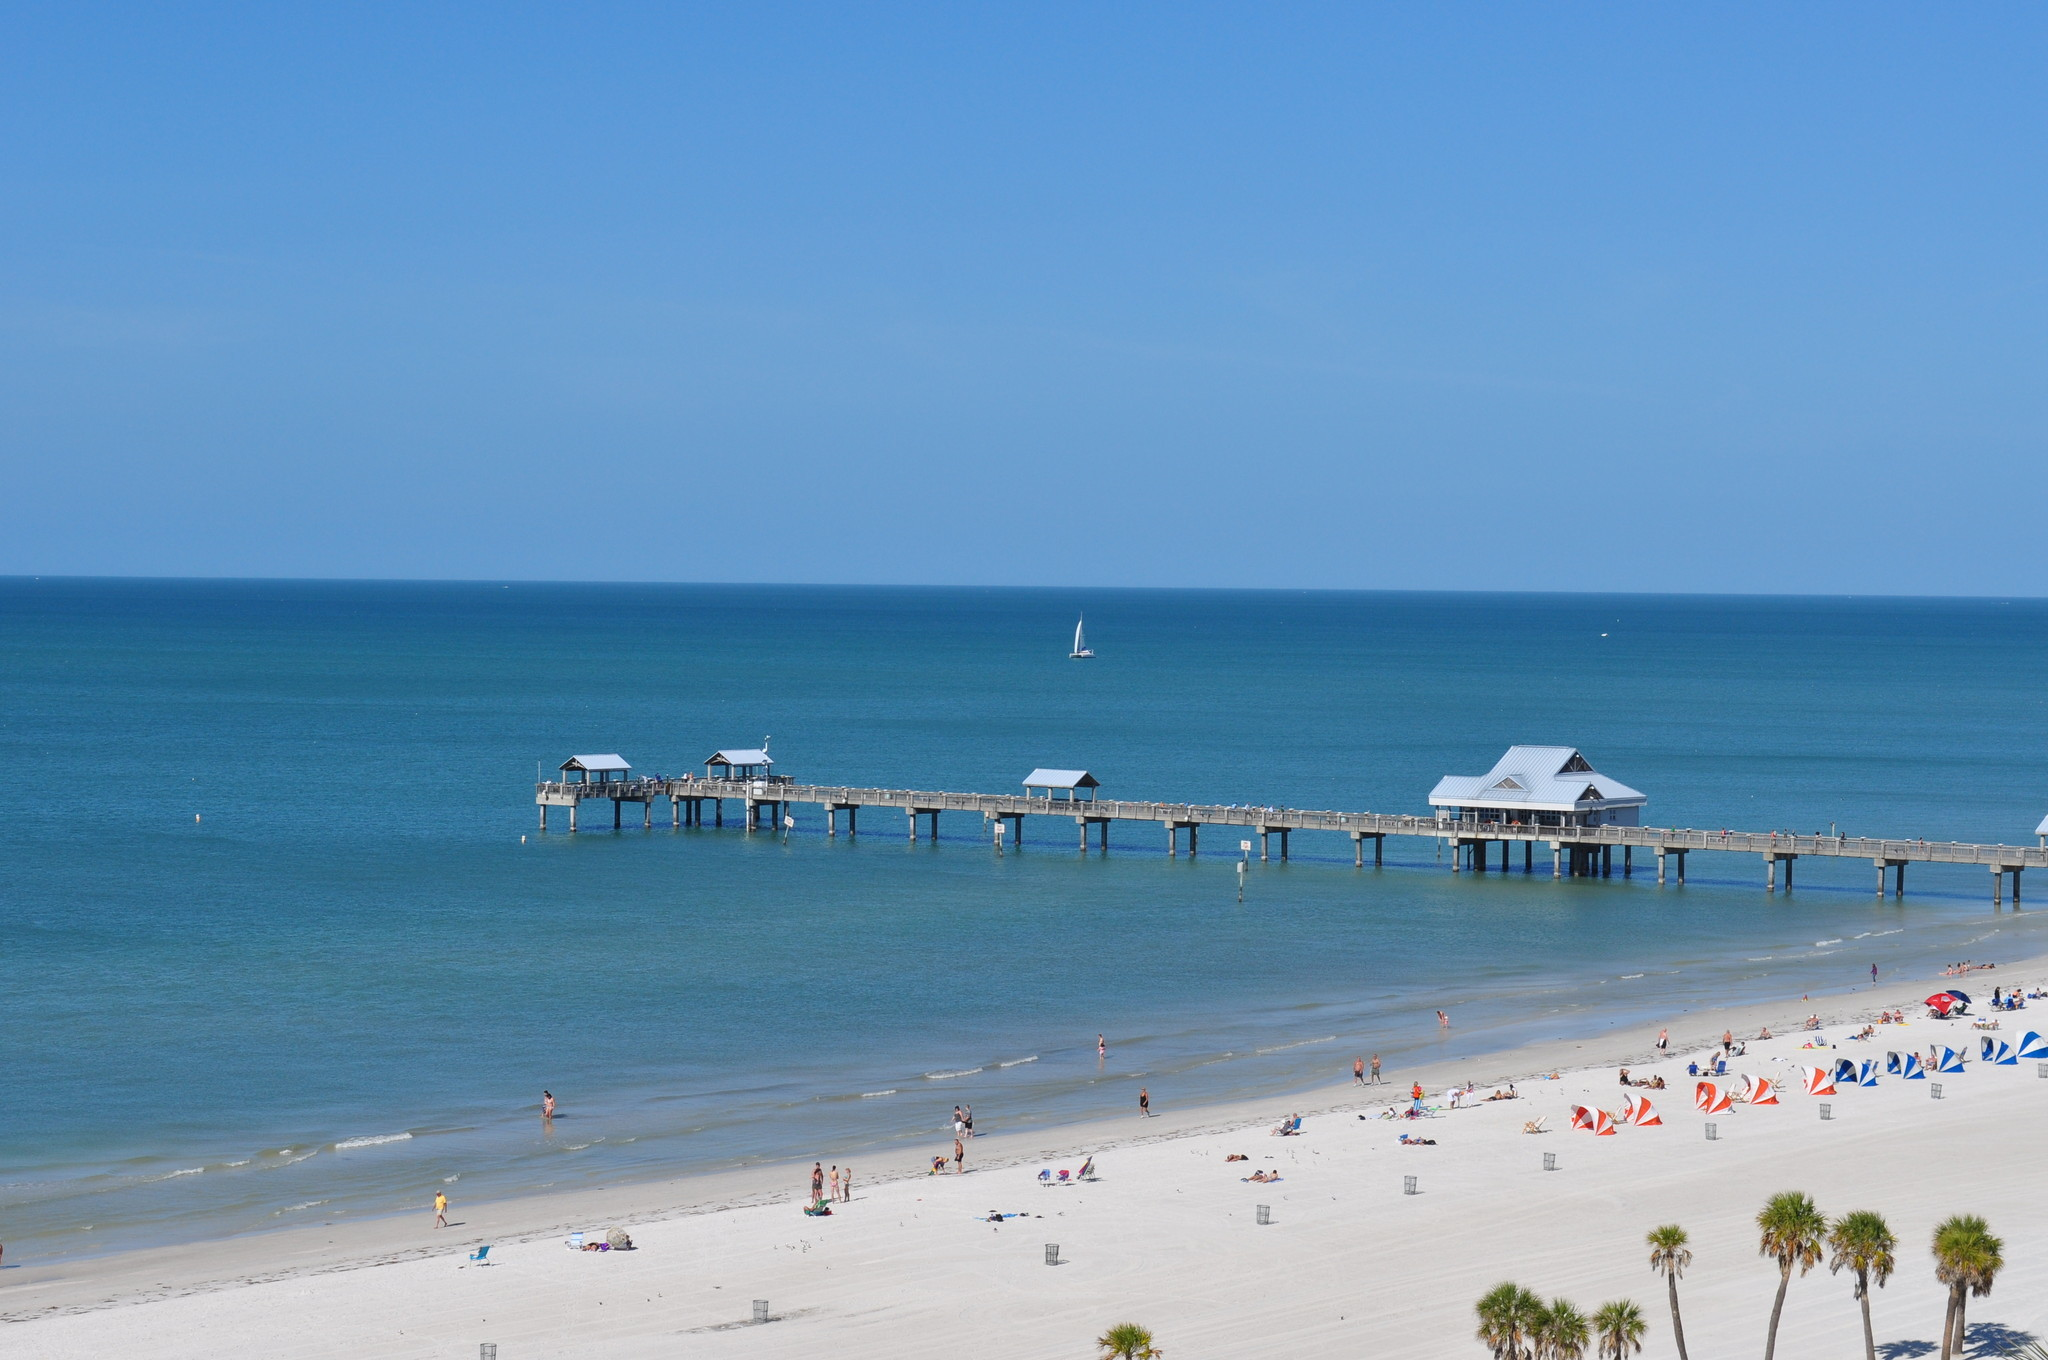 Clearwater Beach Named Best Beach In The U.S. By